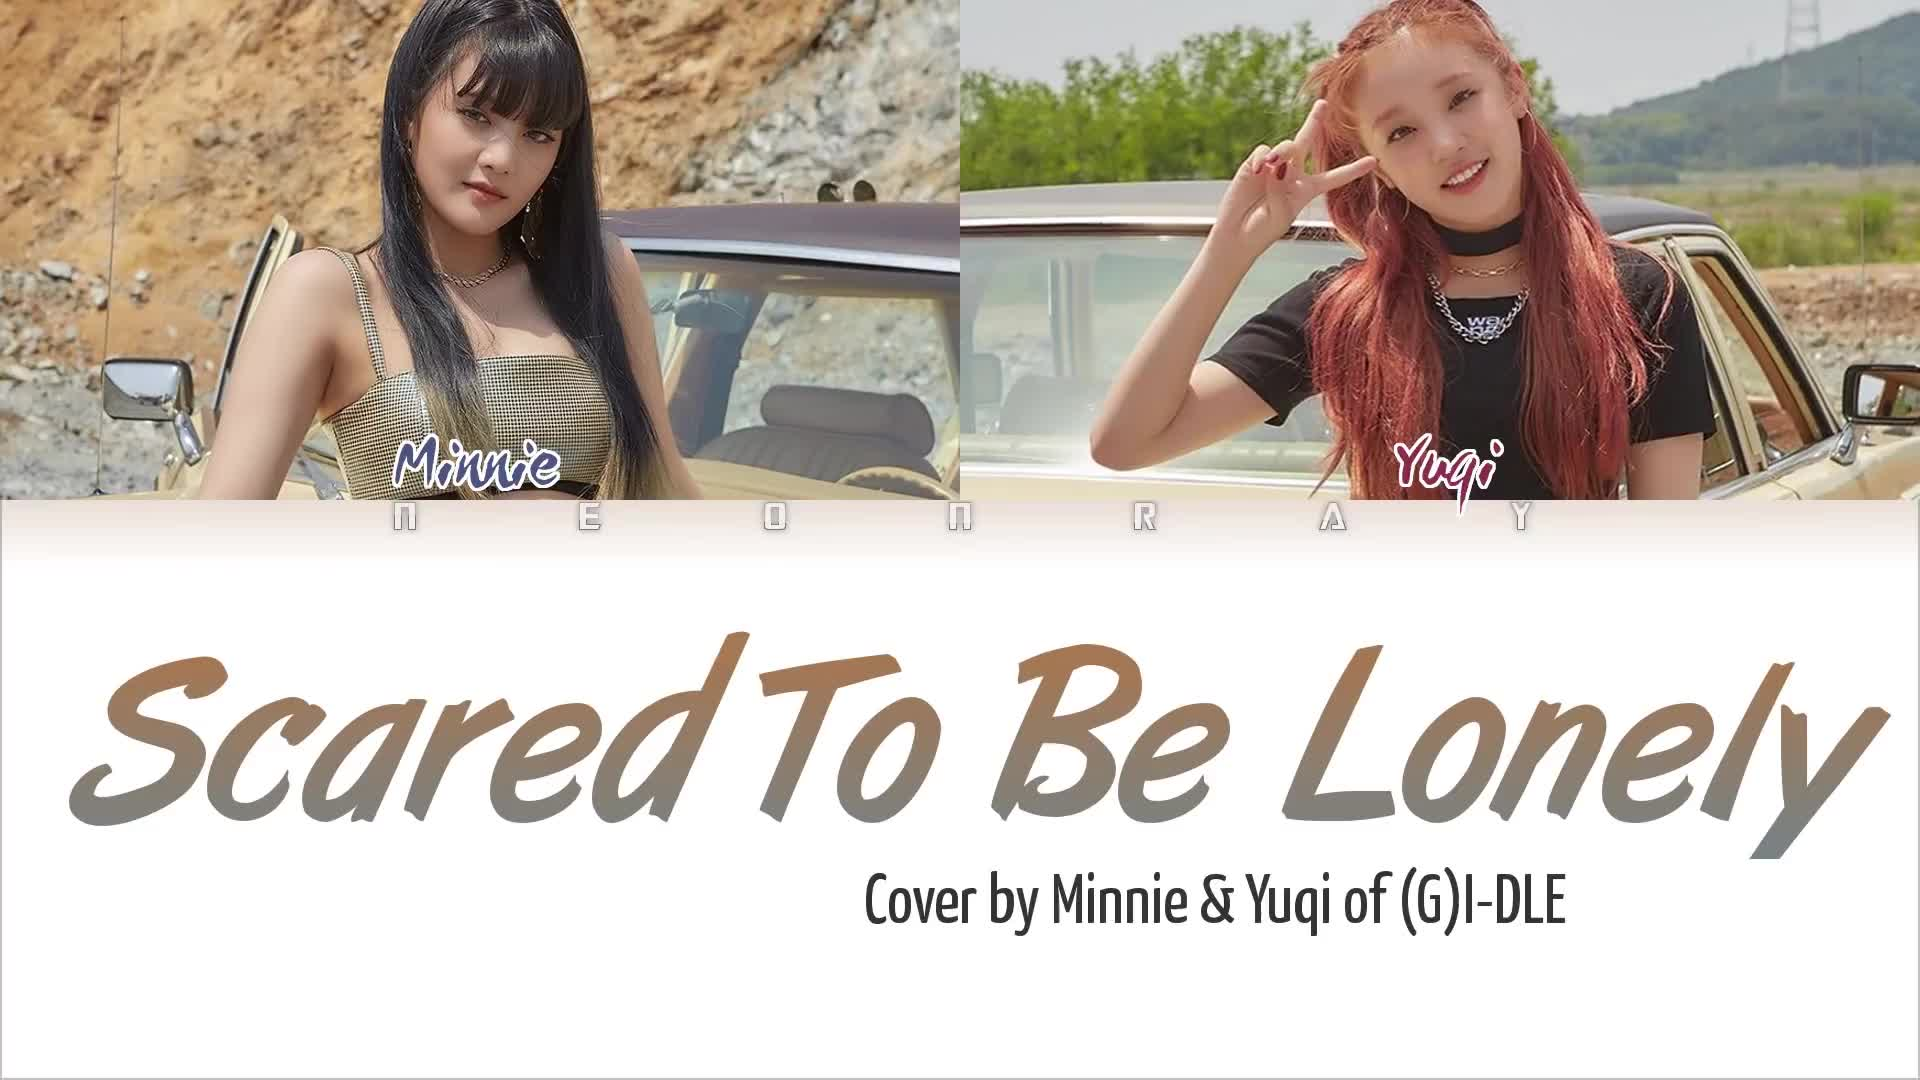 【G-IDLE】宋雨琦&MINNIE合唱《Scared To Be Lonely》認聲歌詞(英語)_嗶哩嗶哩 (゜-゜)つロ 干杯~-bilibili